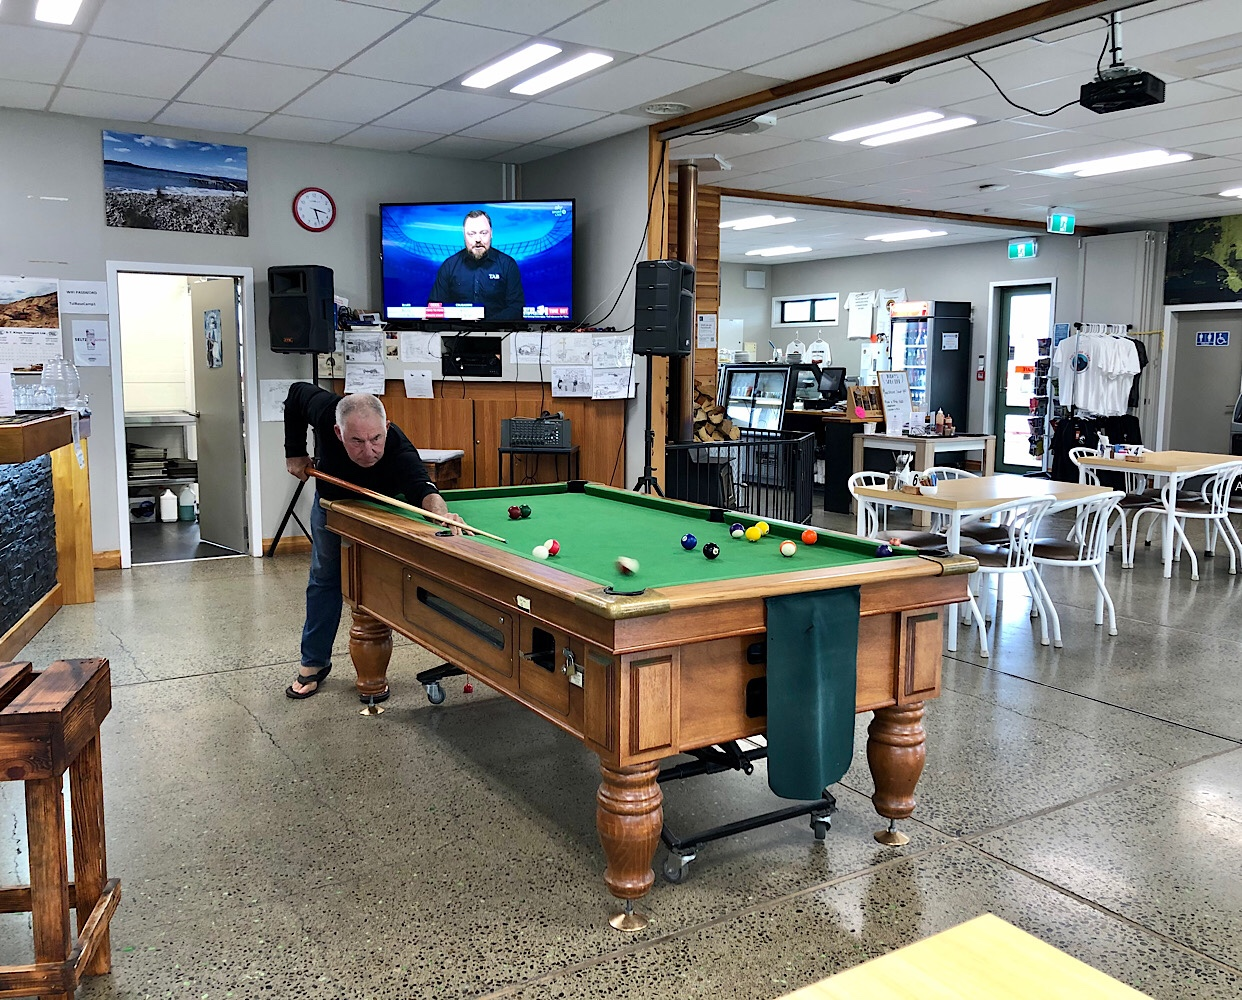 Tui Base Camp pool competition Sunday 21st March 2021